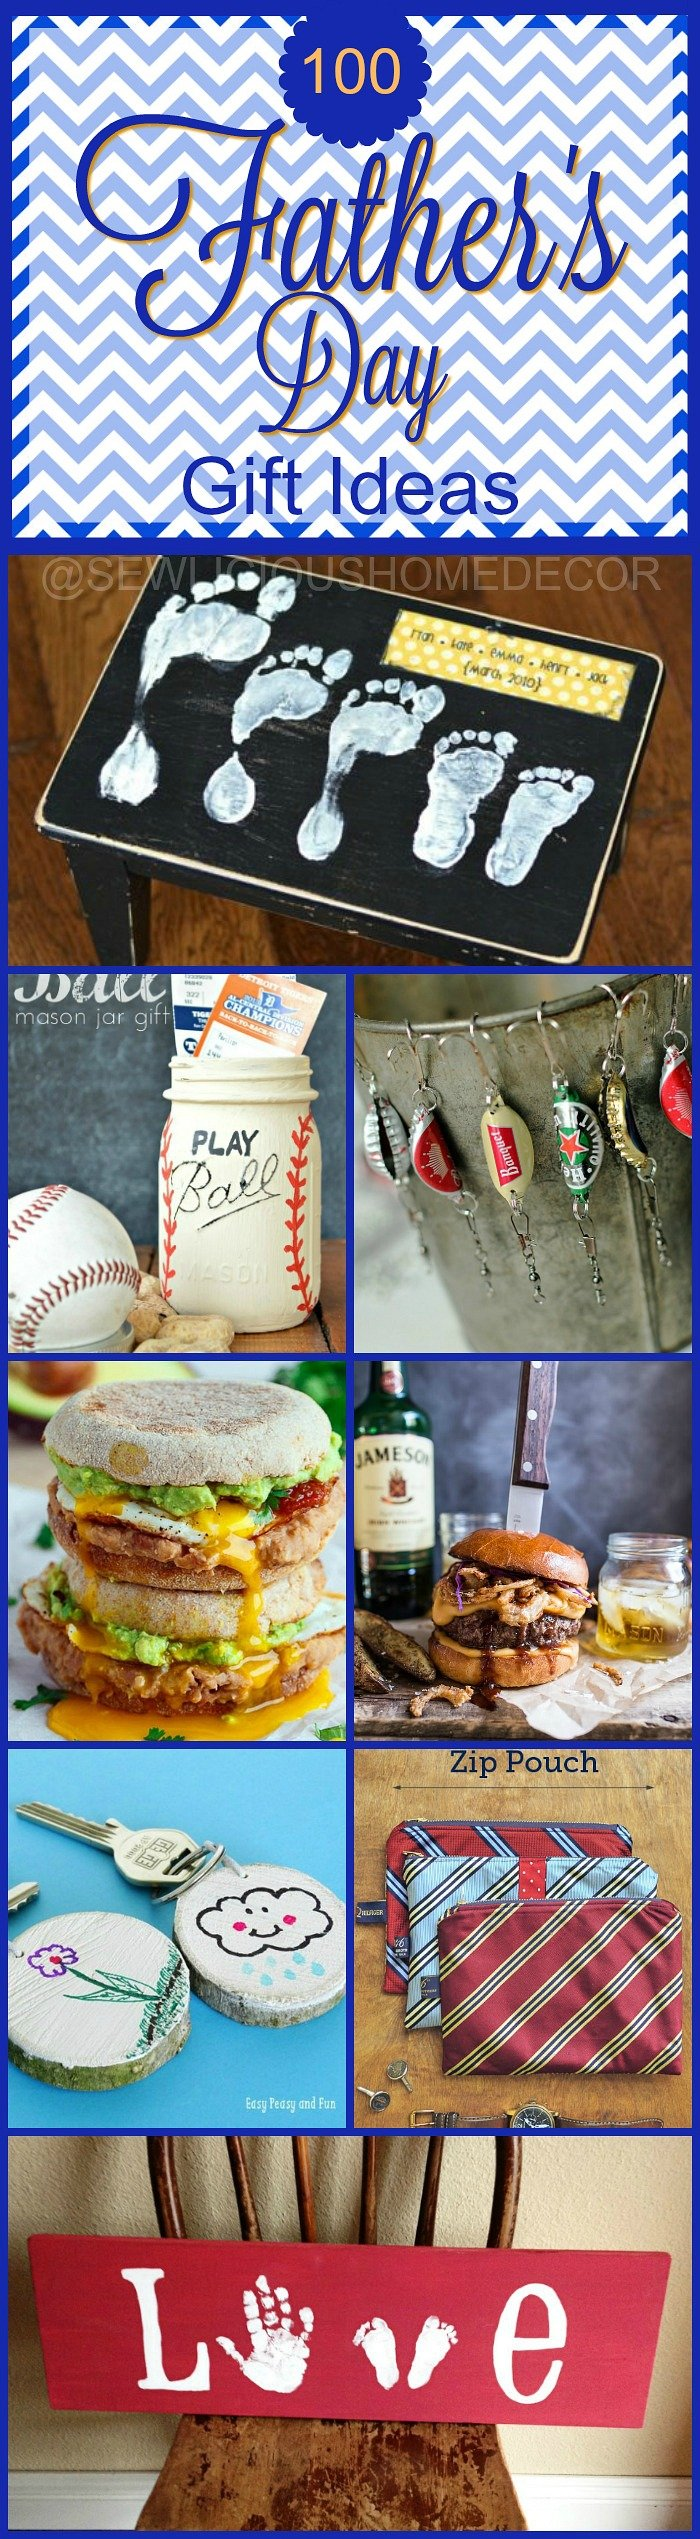 Over 100 Fathers Day Gift Ideas and Recipes at sewlicioushomedecor